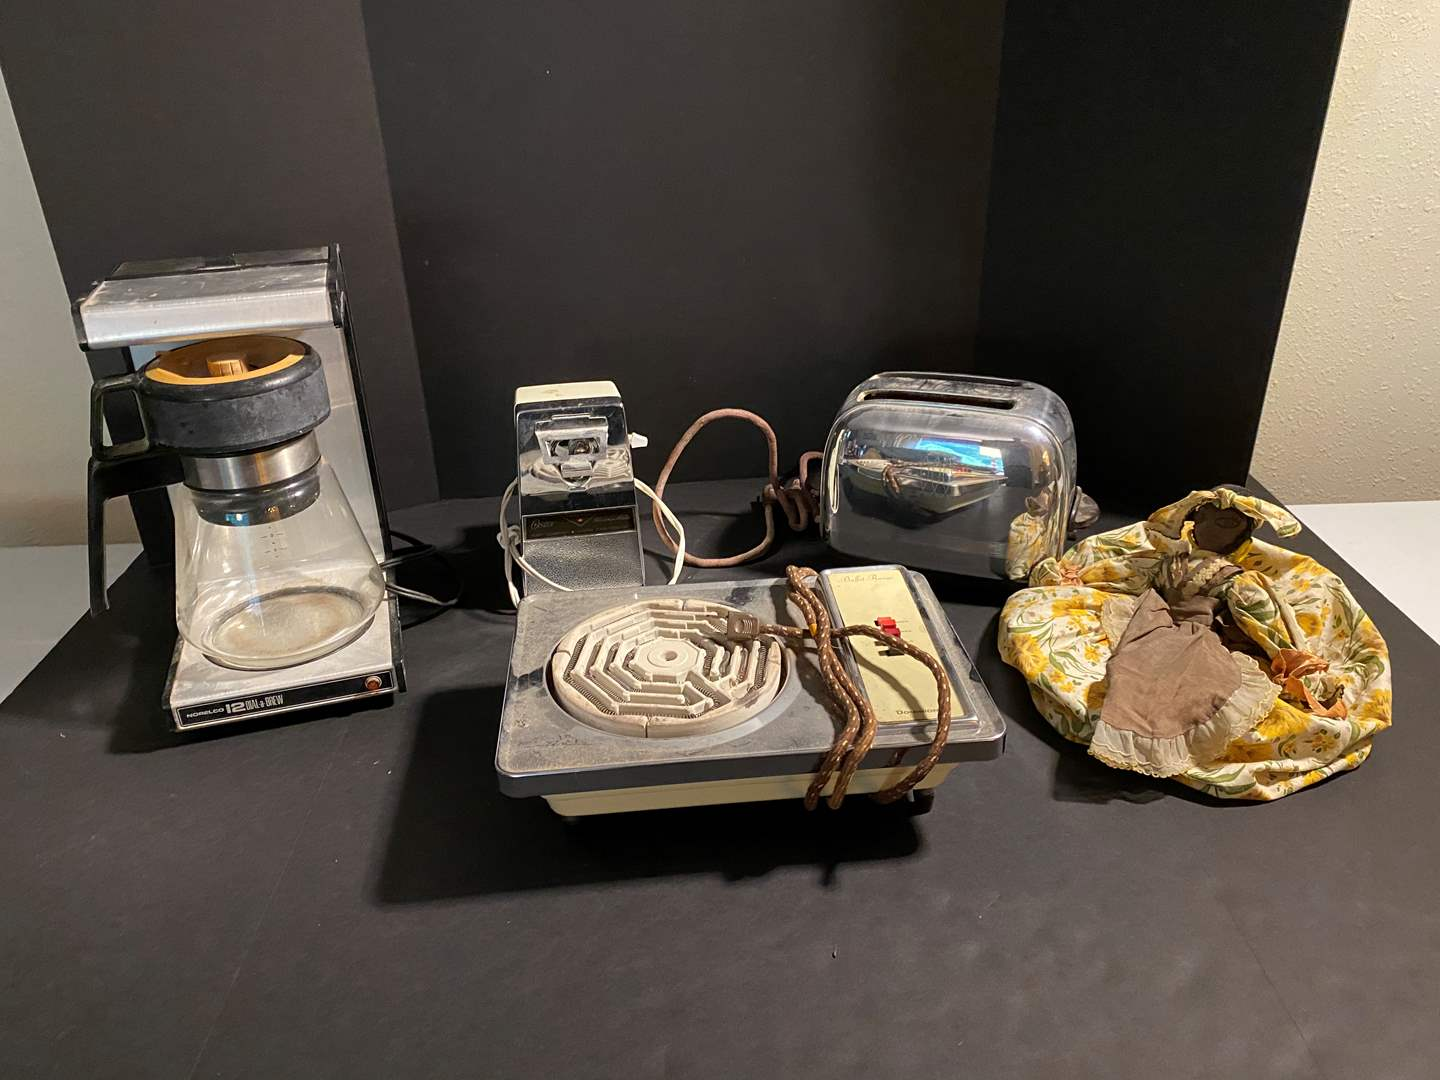 Lot # 161 - Vintage Appliances: Toaster, Buffet Range, Coffee Maker & Can Opener (main image)